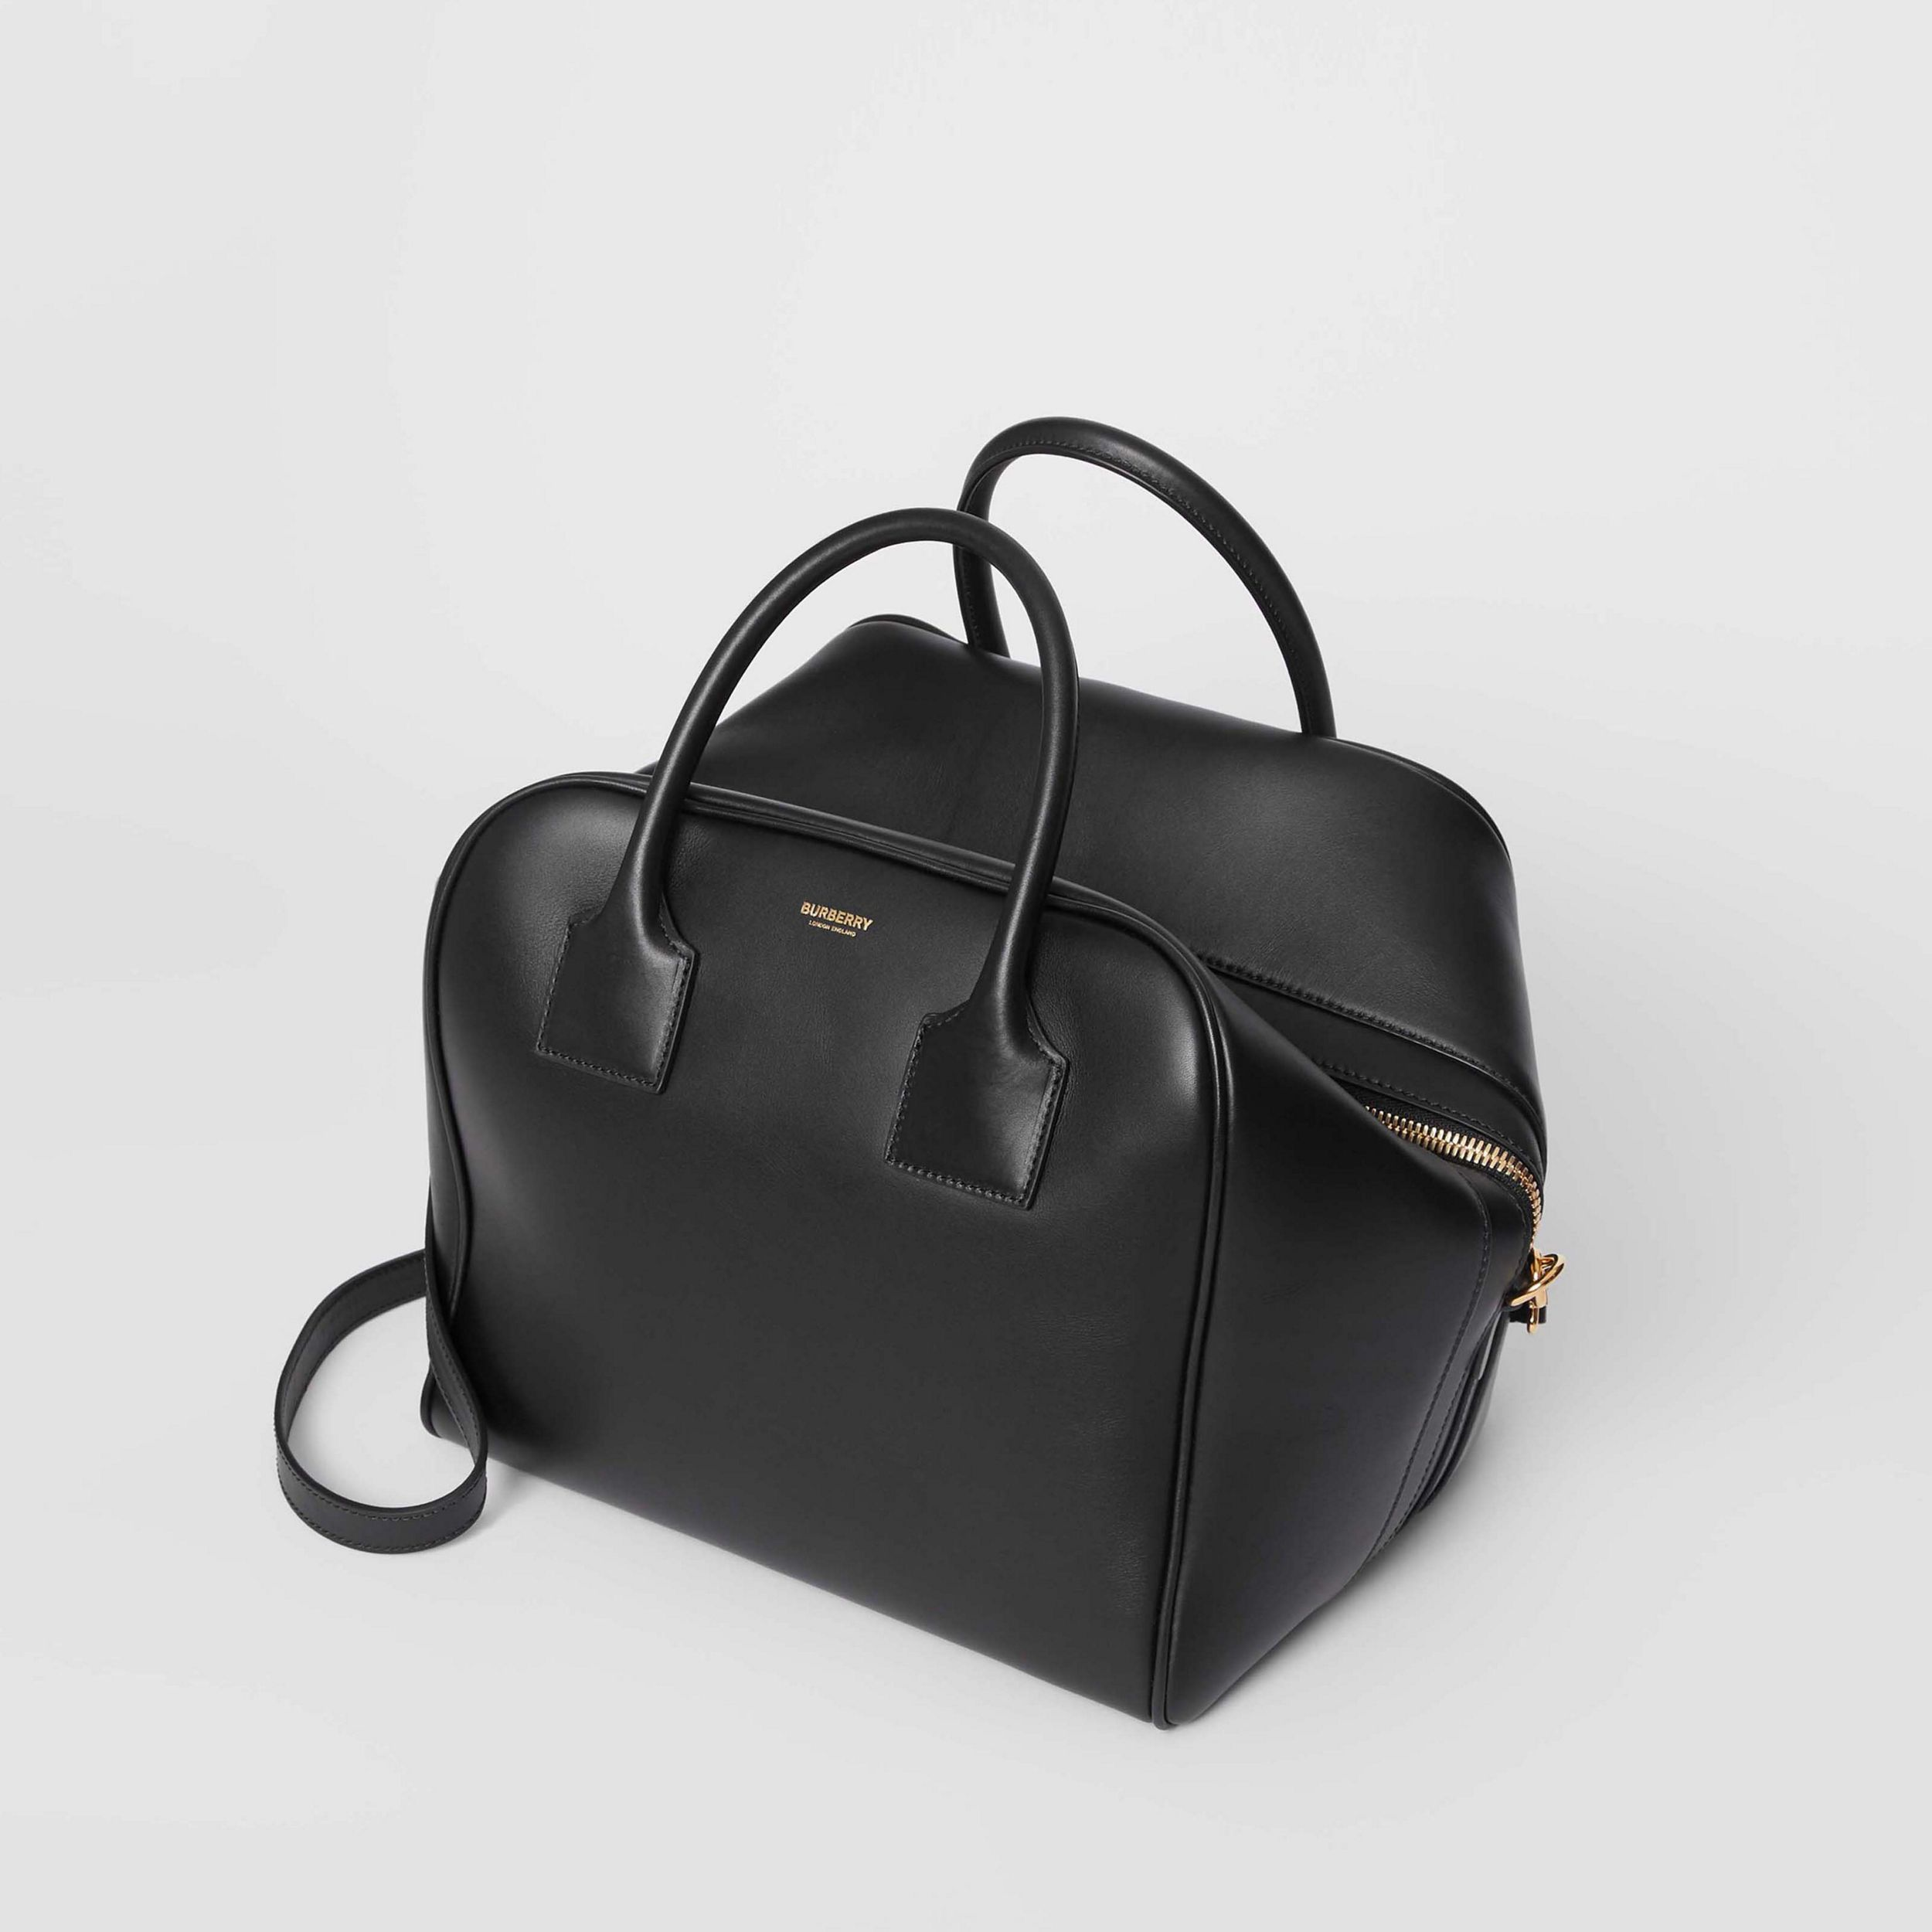 Medium Leather Cube Bag in Black - Women | Burberry United States - 4